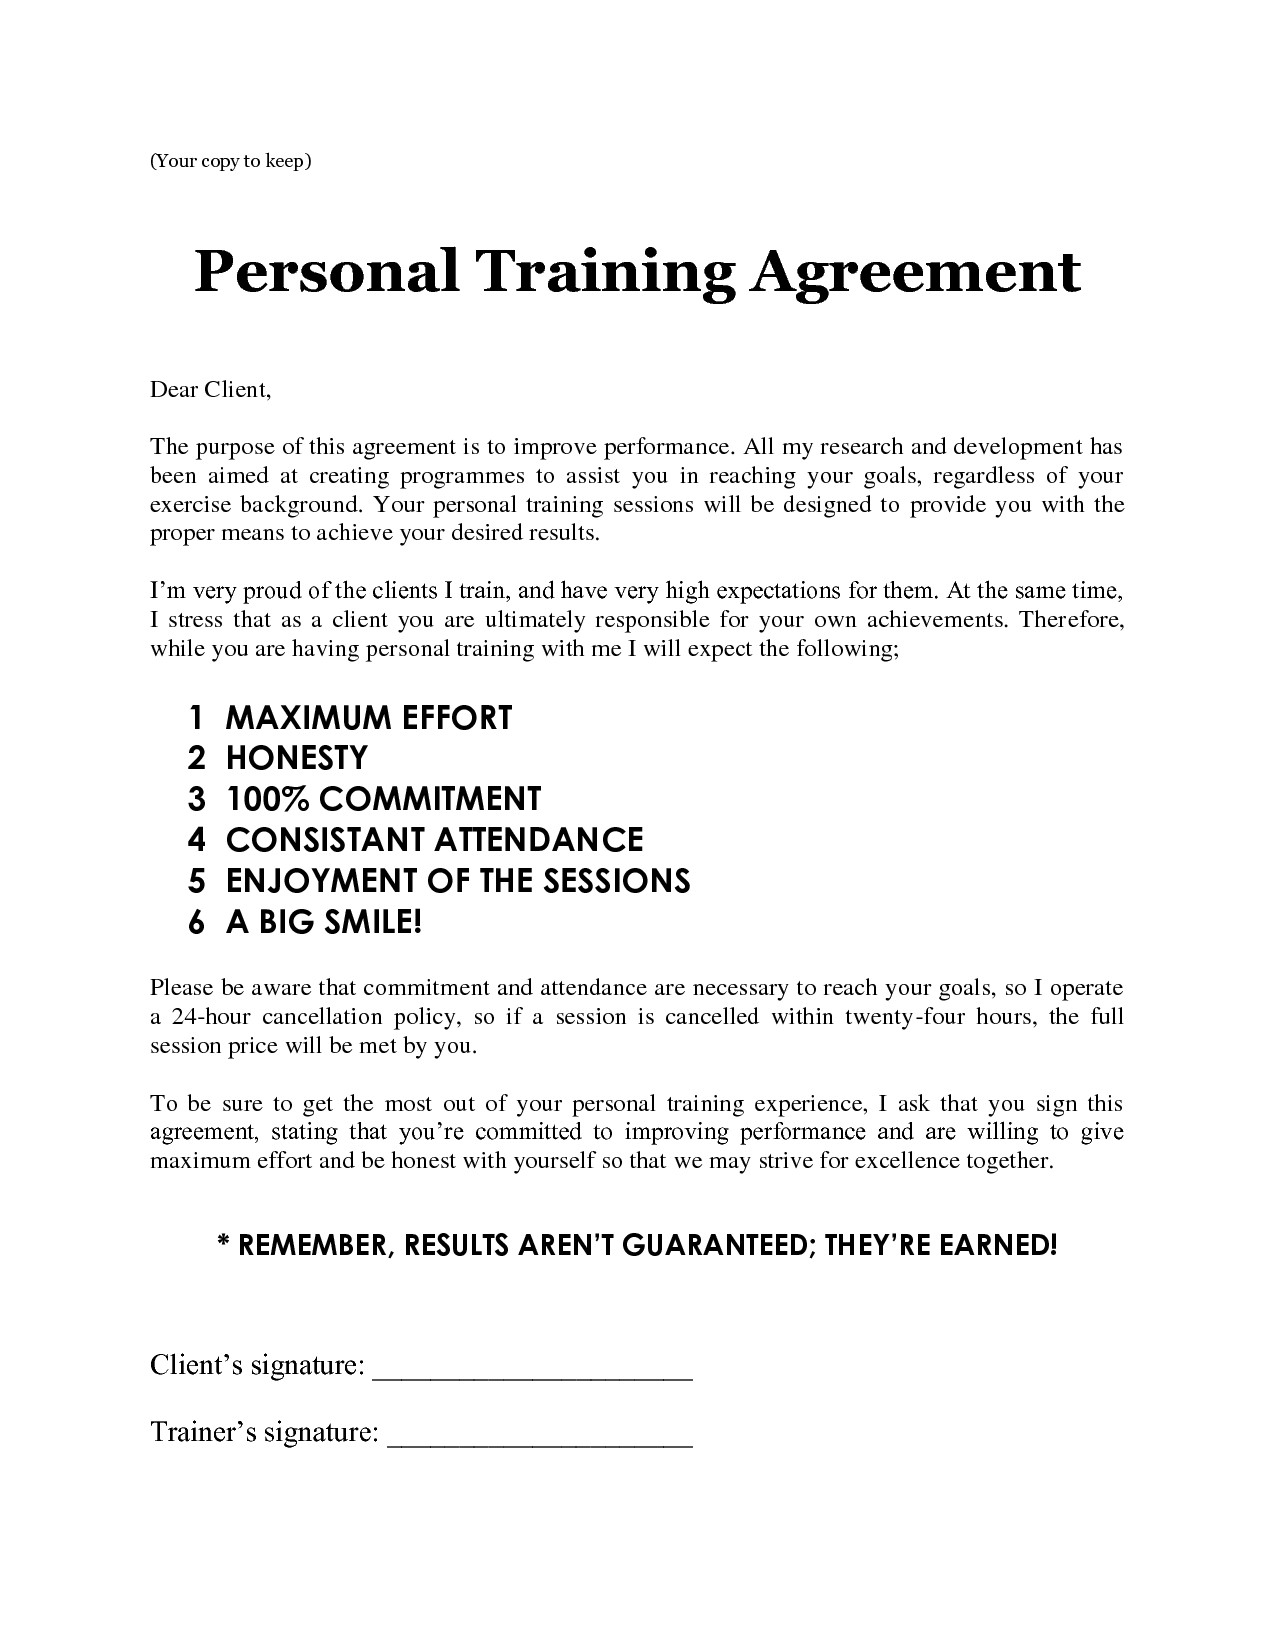 Personal Training Contracts Template Personal Training Contract Free Printable Documents